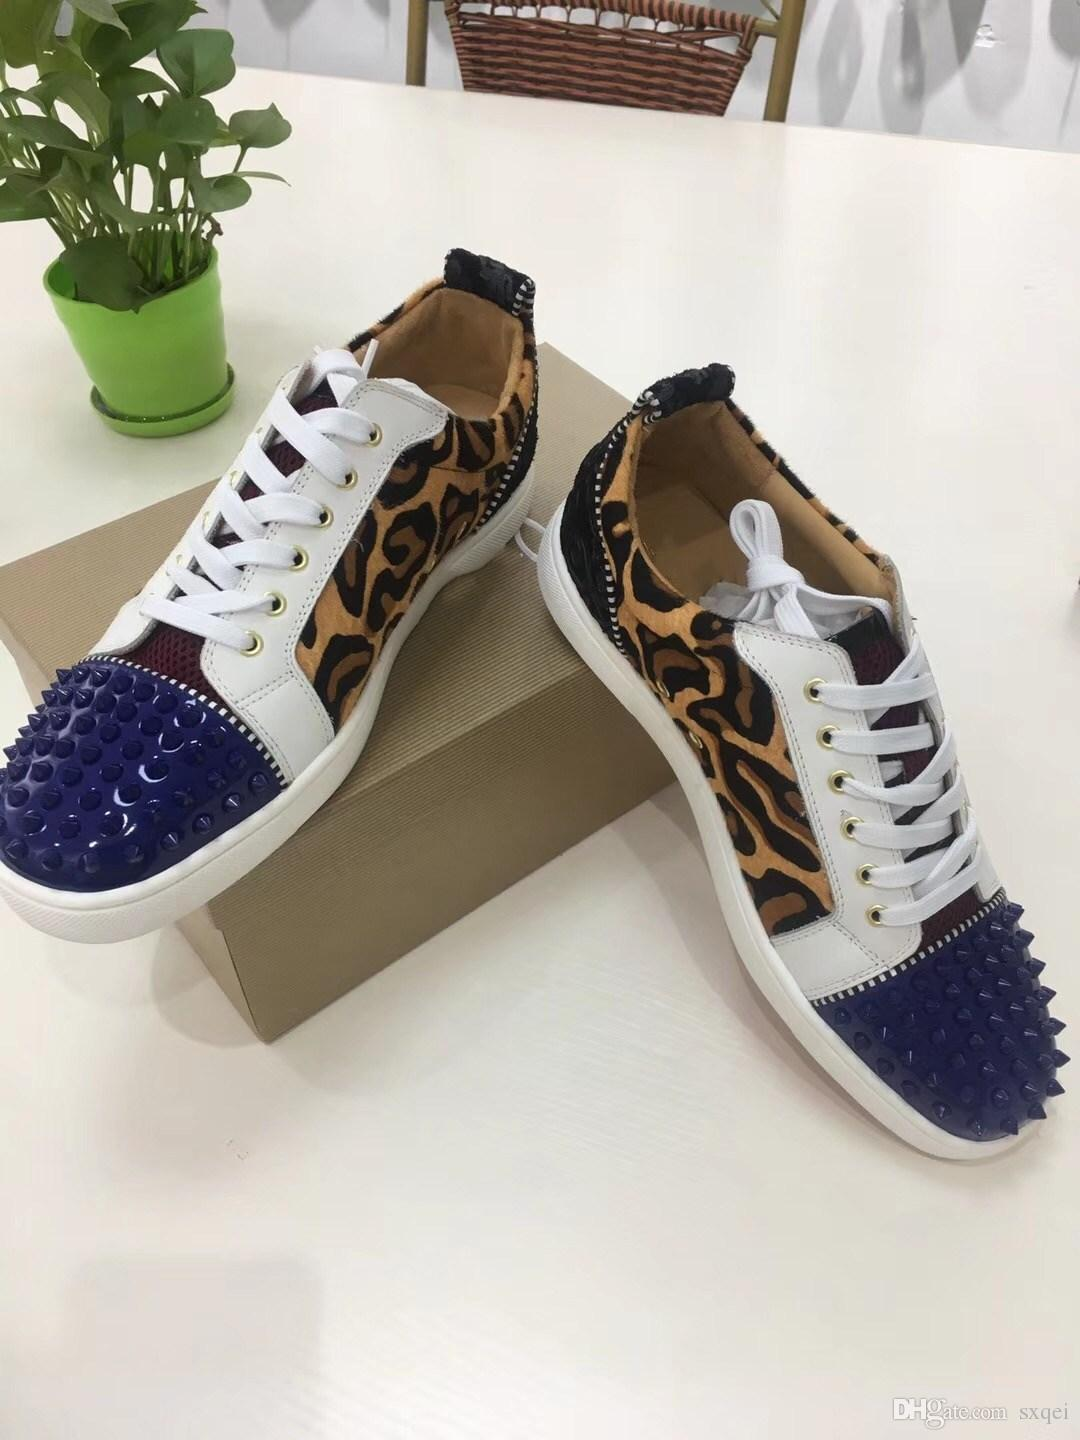 New Leopard Print Glitter Men S Shoes Cow Leather Low Top Red Bottom  Sneakers Unisex Street Wear Brand Casual Flat Shoes Blue Shoes Clogs For  Women From ... 48f3b3f139bd